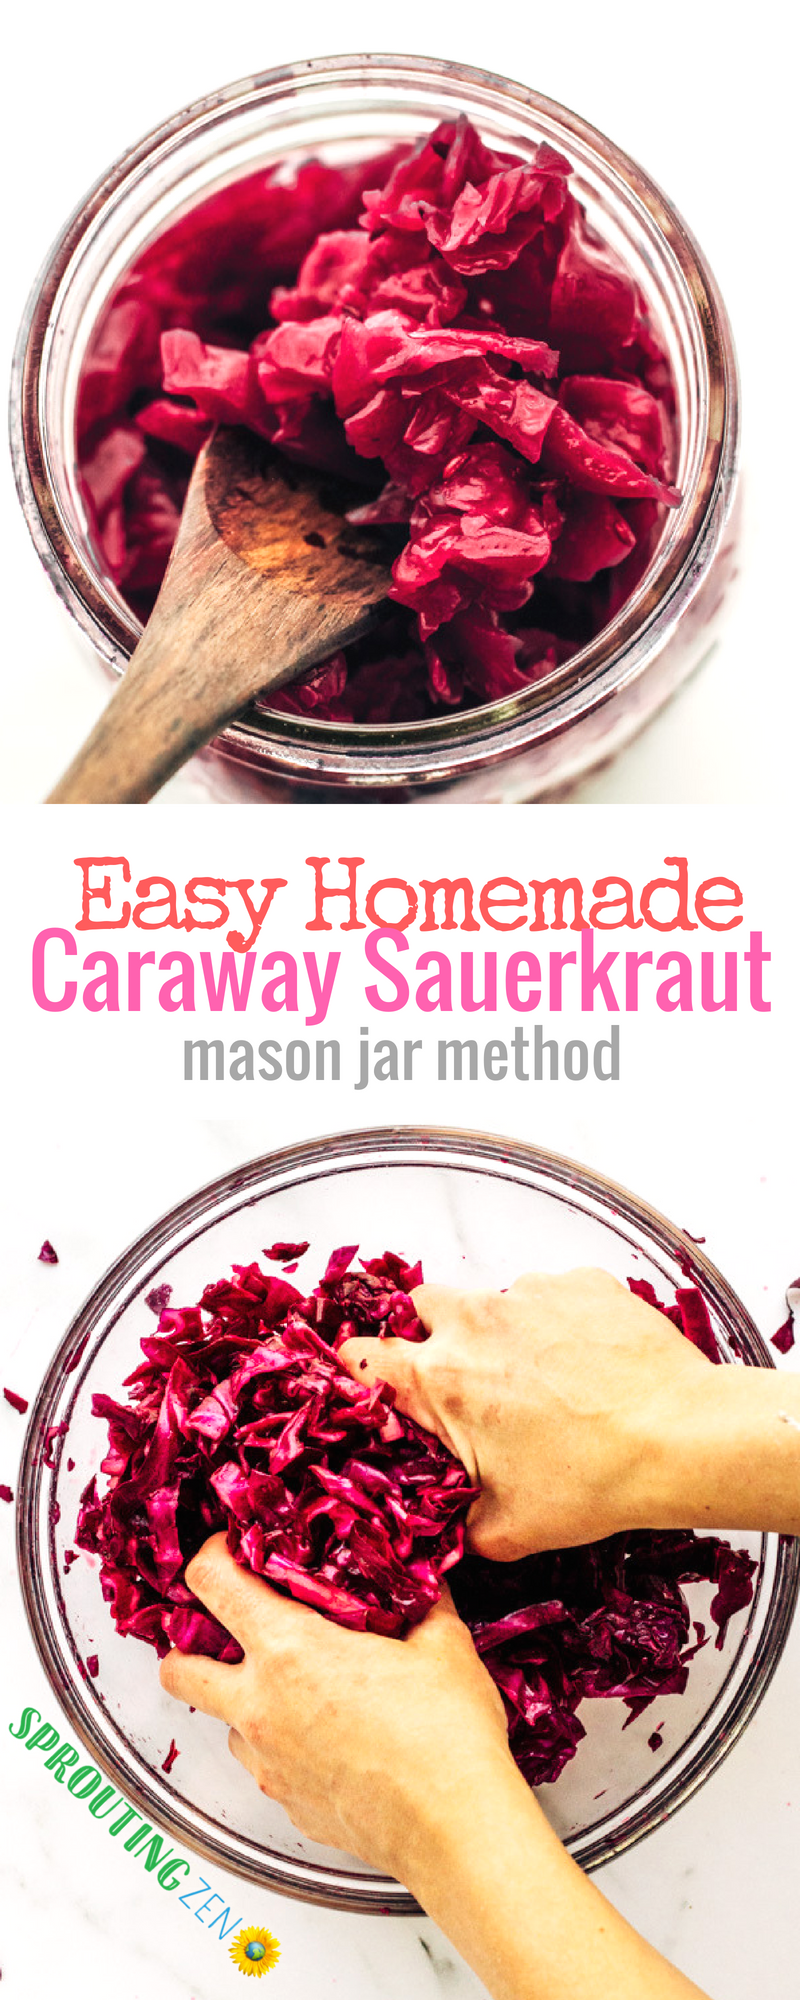 Learn how to make homemade sauerkraut with caraway and garlic flavors. Plus, valuable tips on achieving a good ferment. #sauerkraut #fermenting #vegan #plantbased